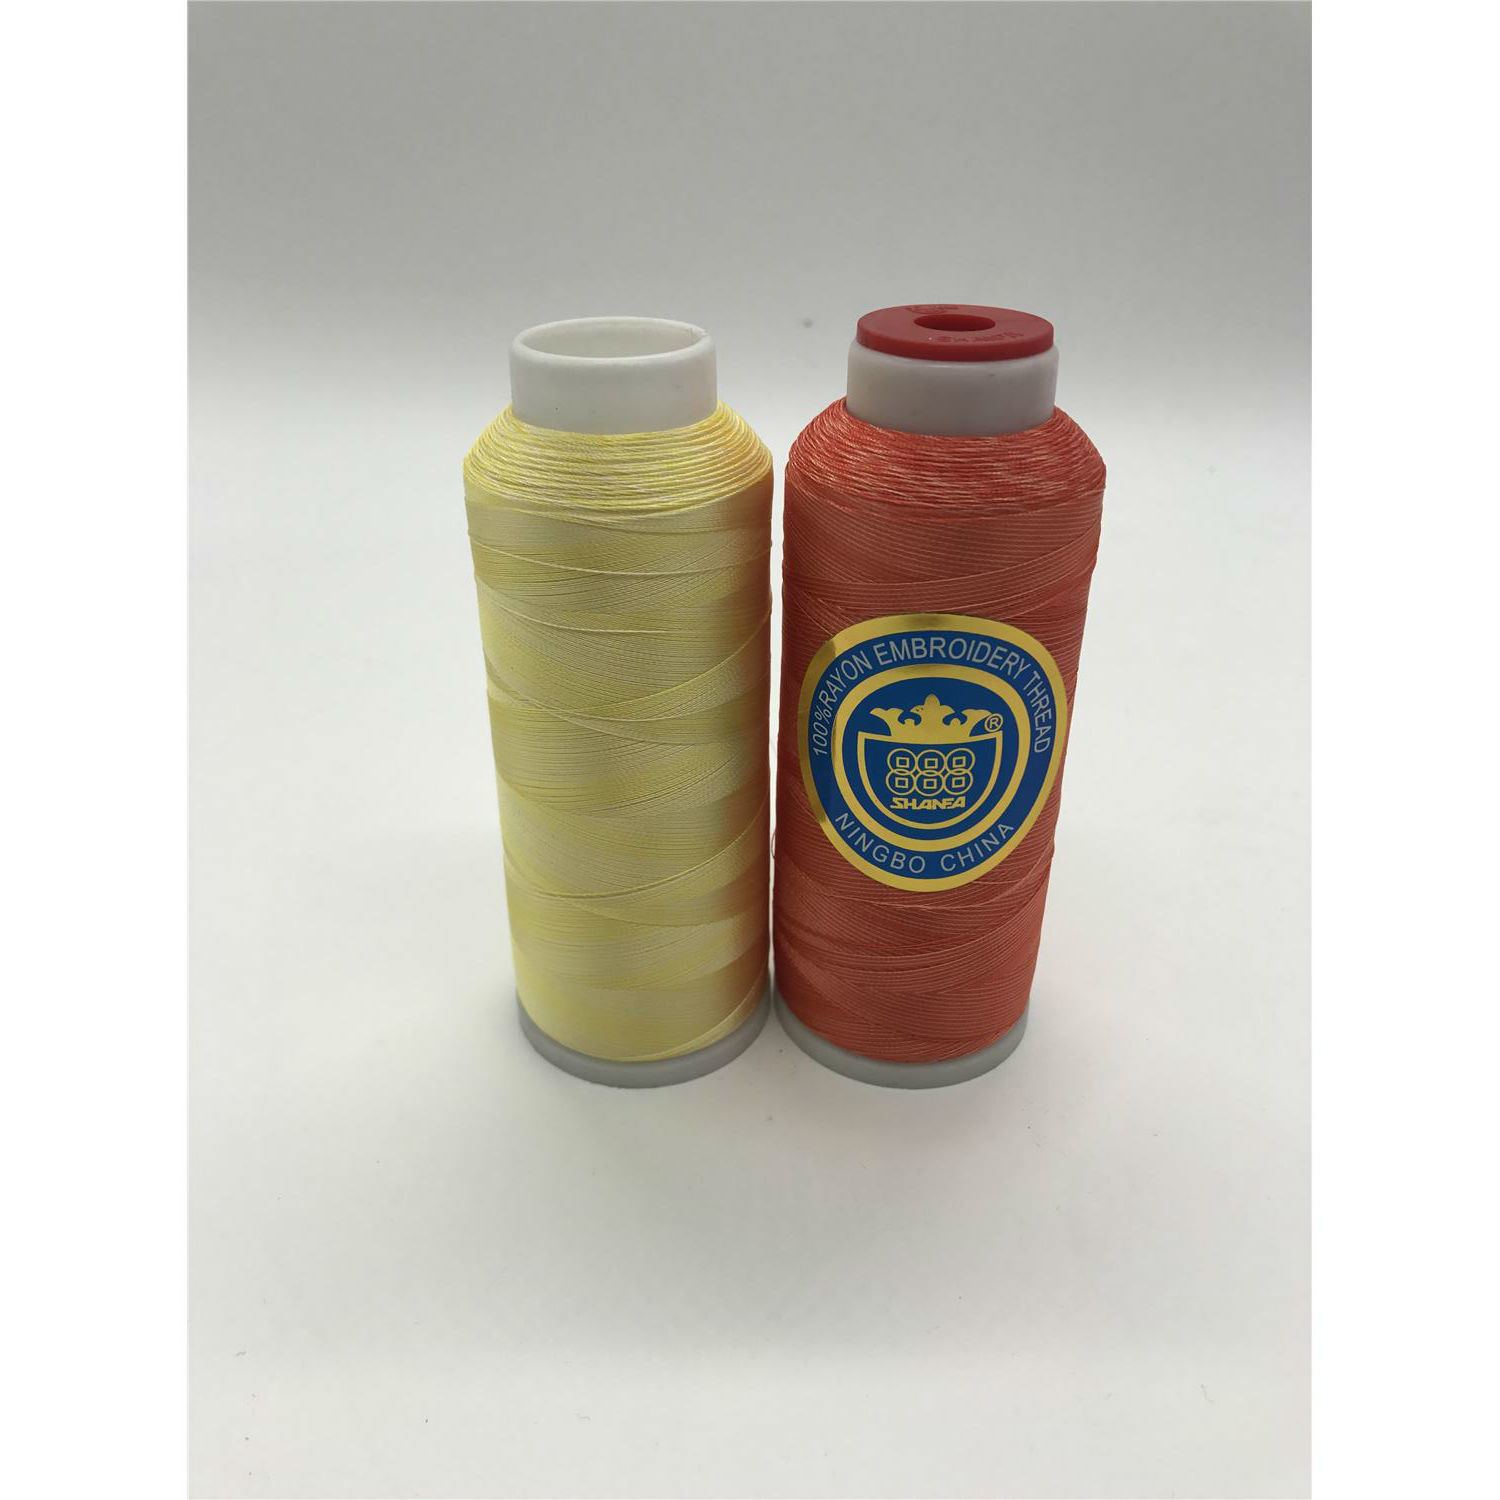 Shanfa Multi-Color Rayon Embroiery Thread